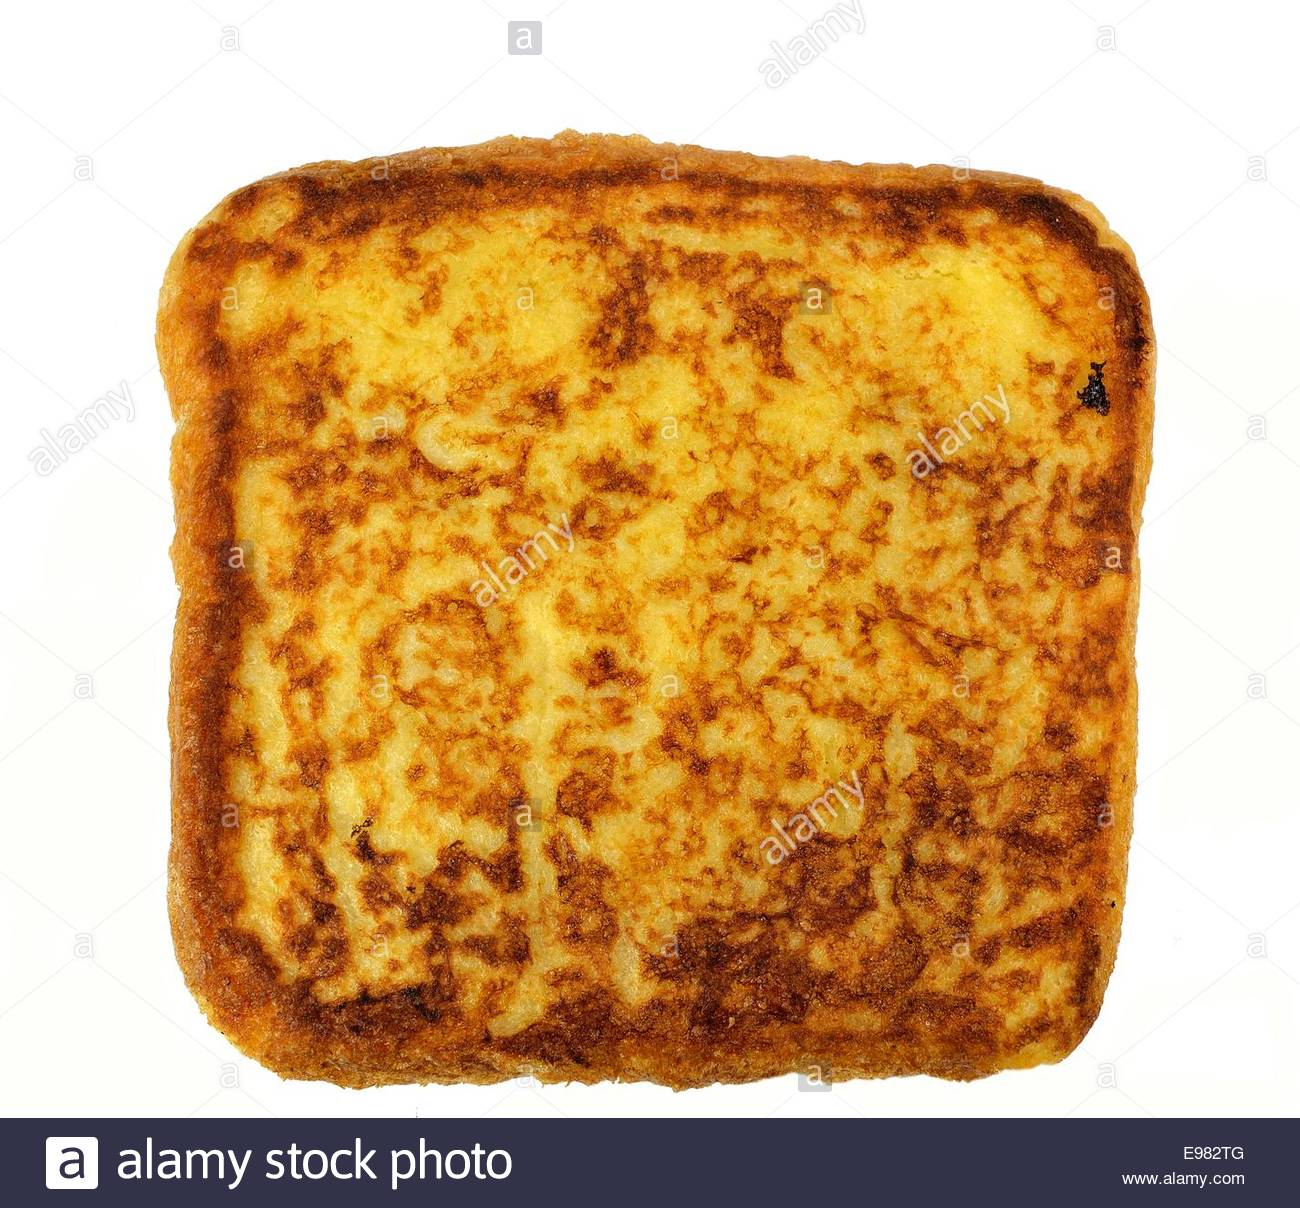 Slice of french toast on a white background Stock Photo 74551248 1300x1208